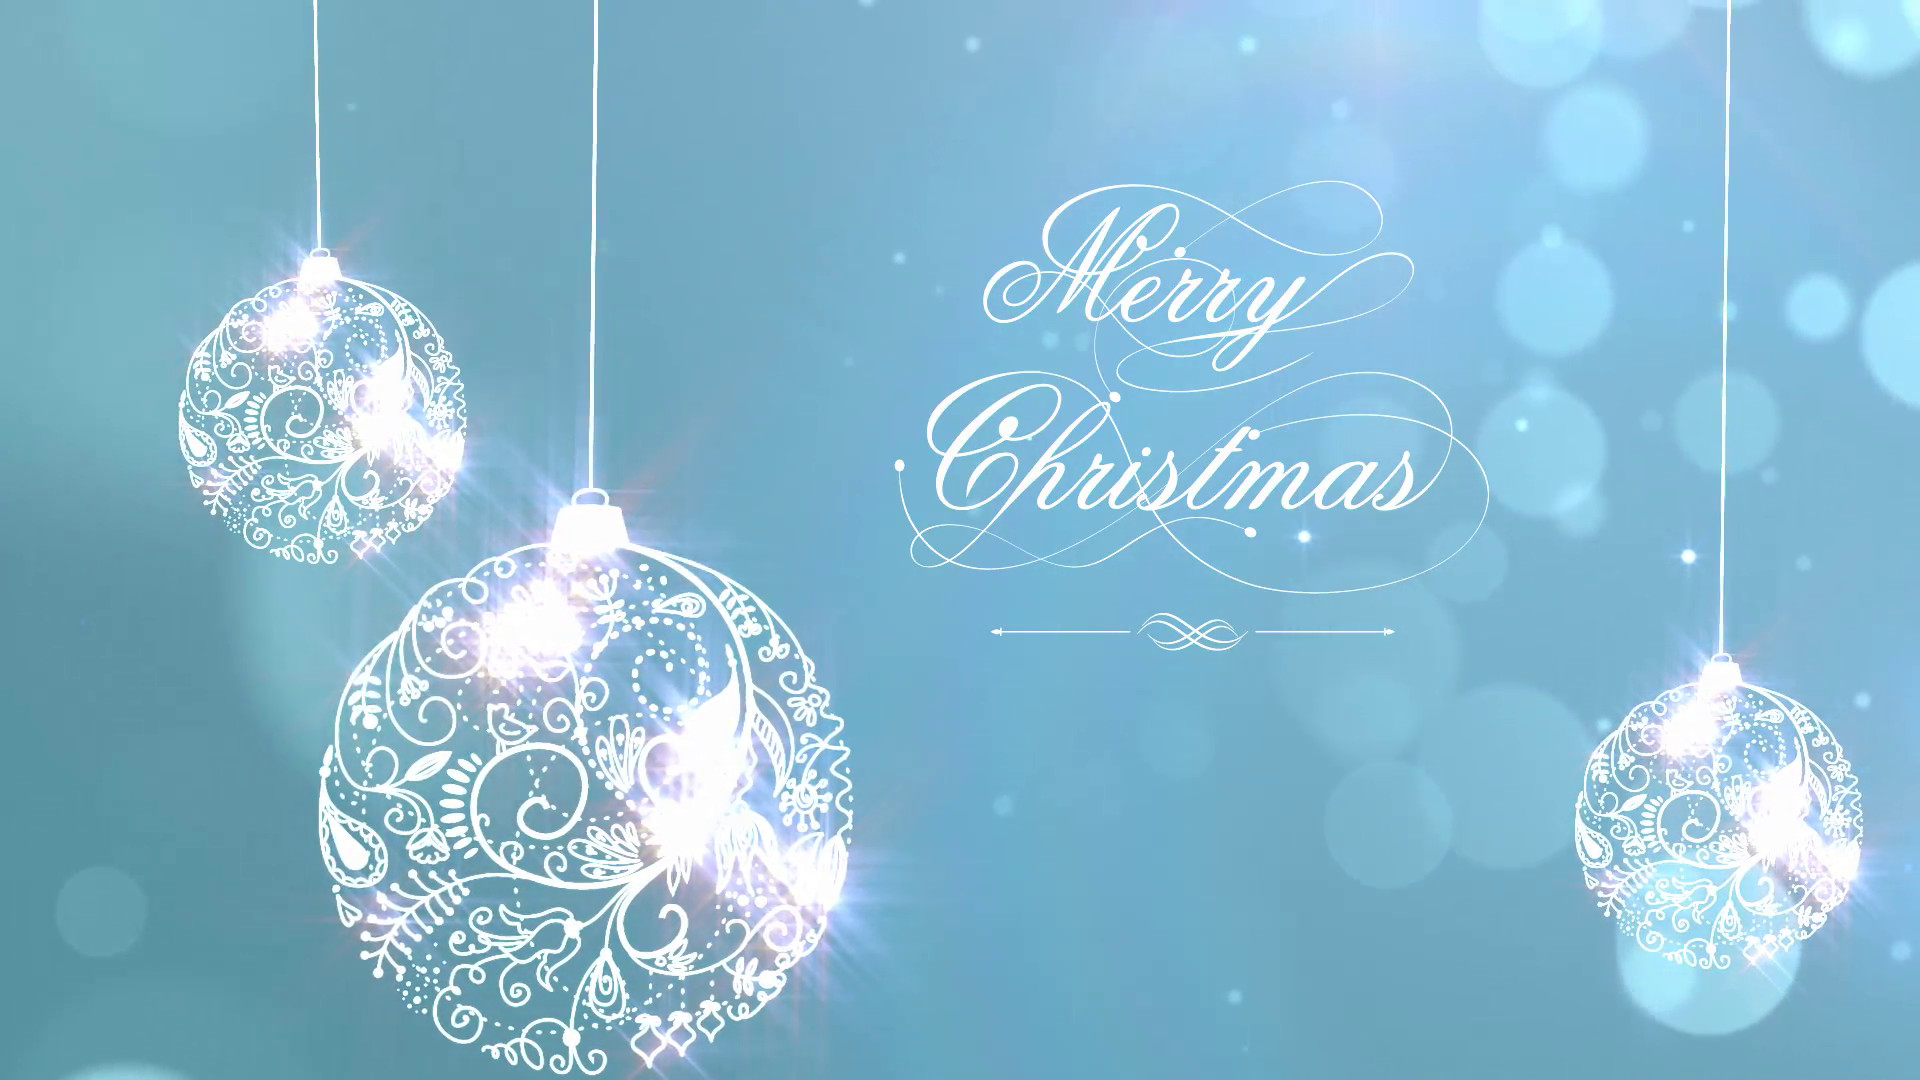 1920x1080 Merry Christmas Background with Ornaments